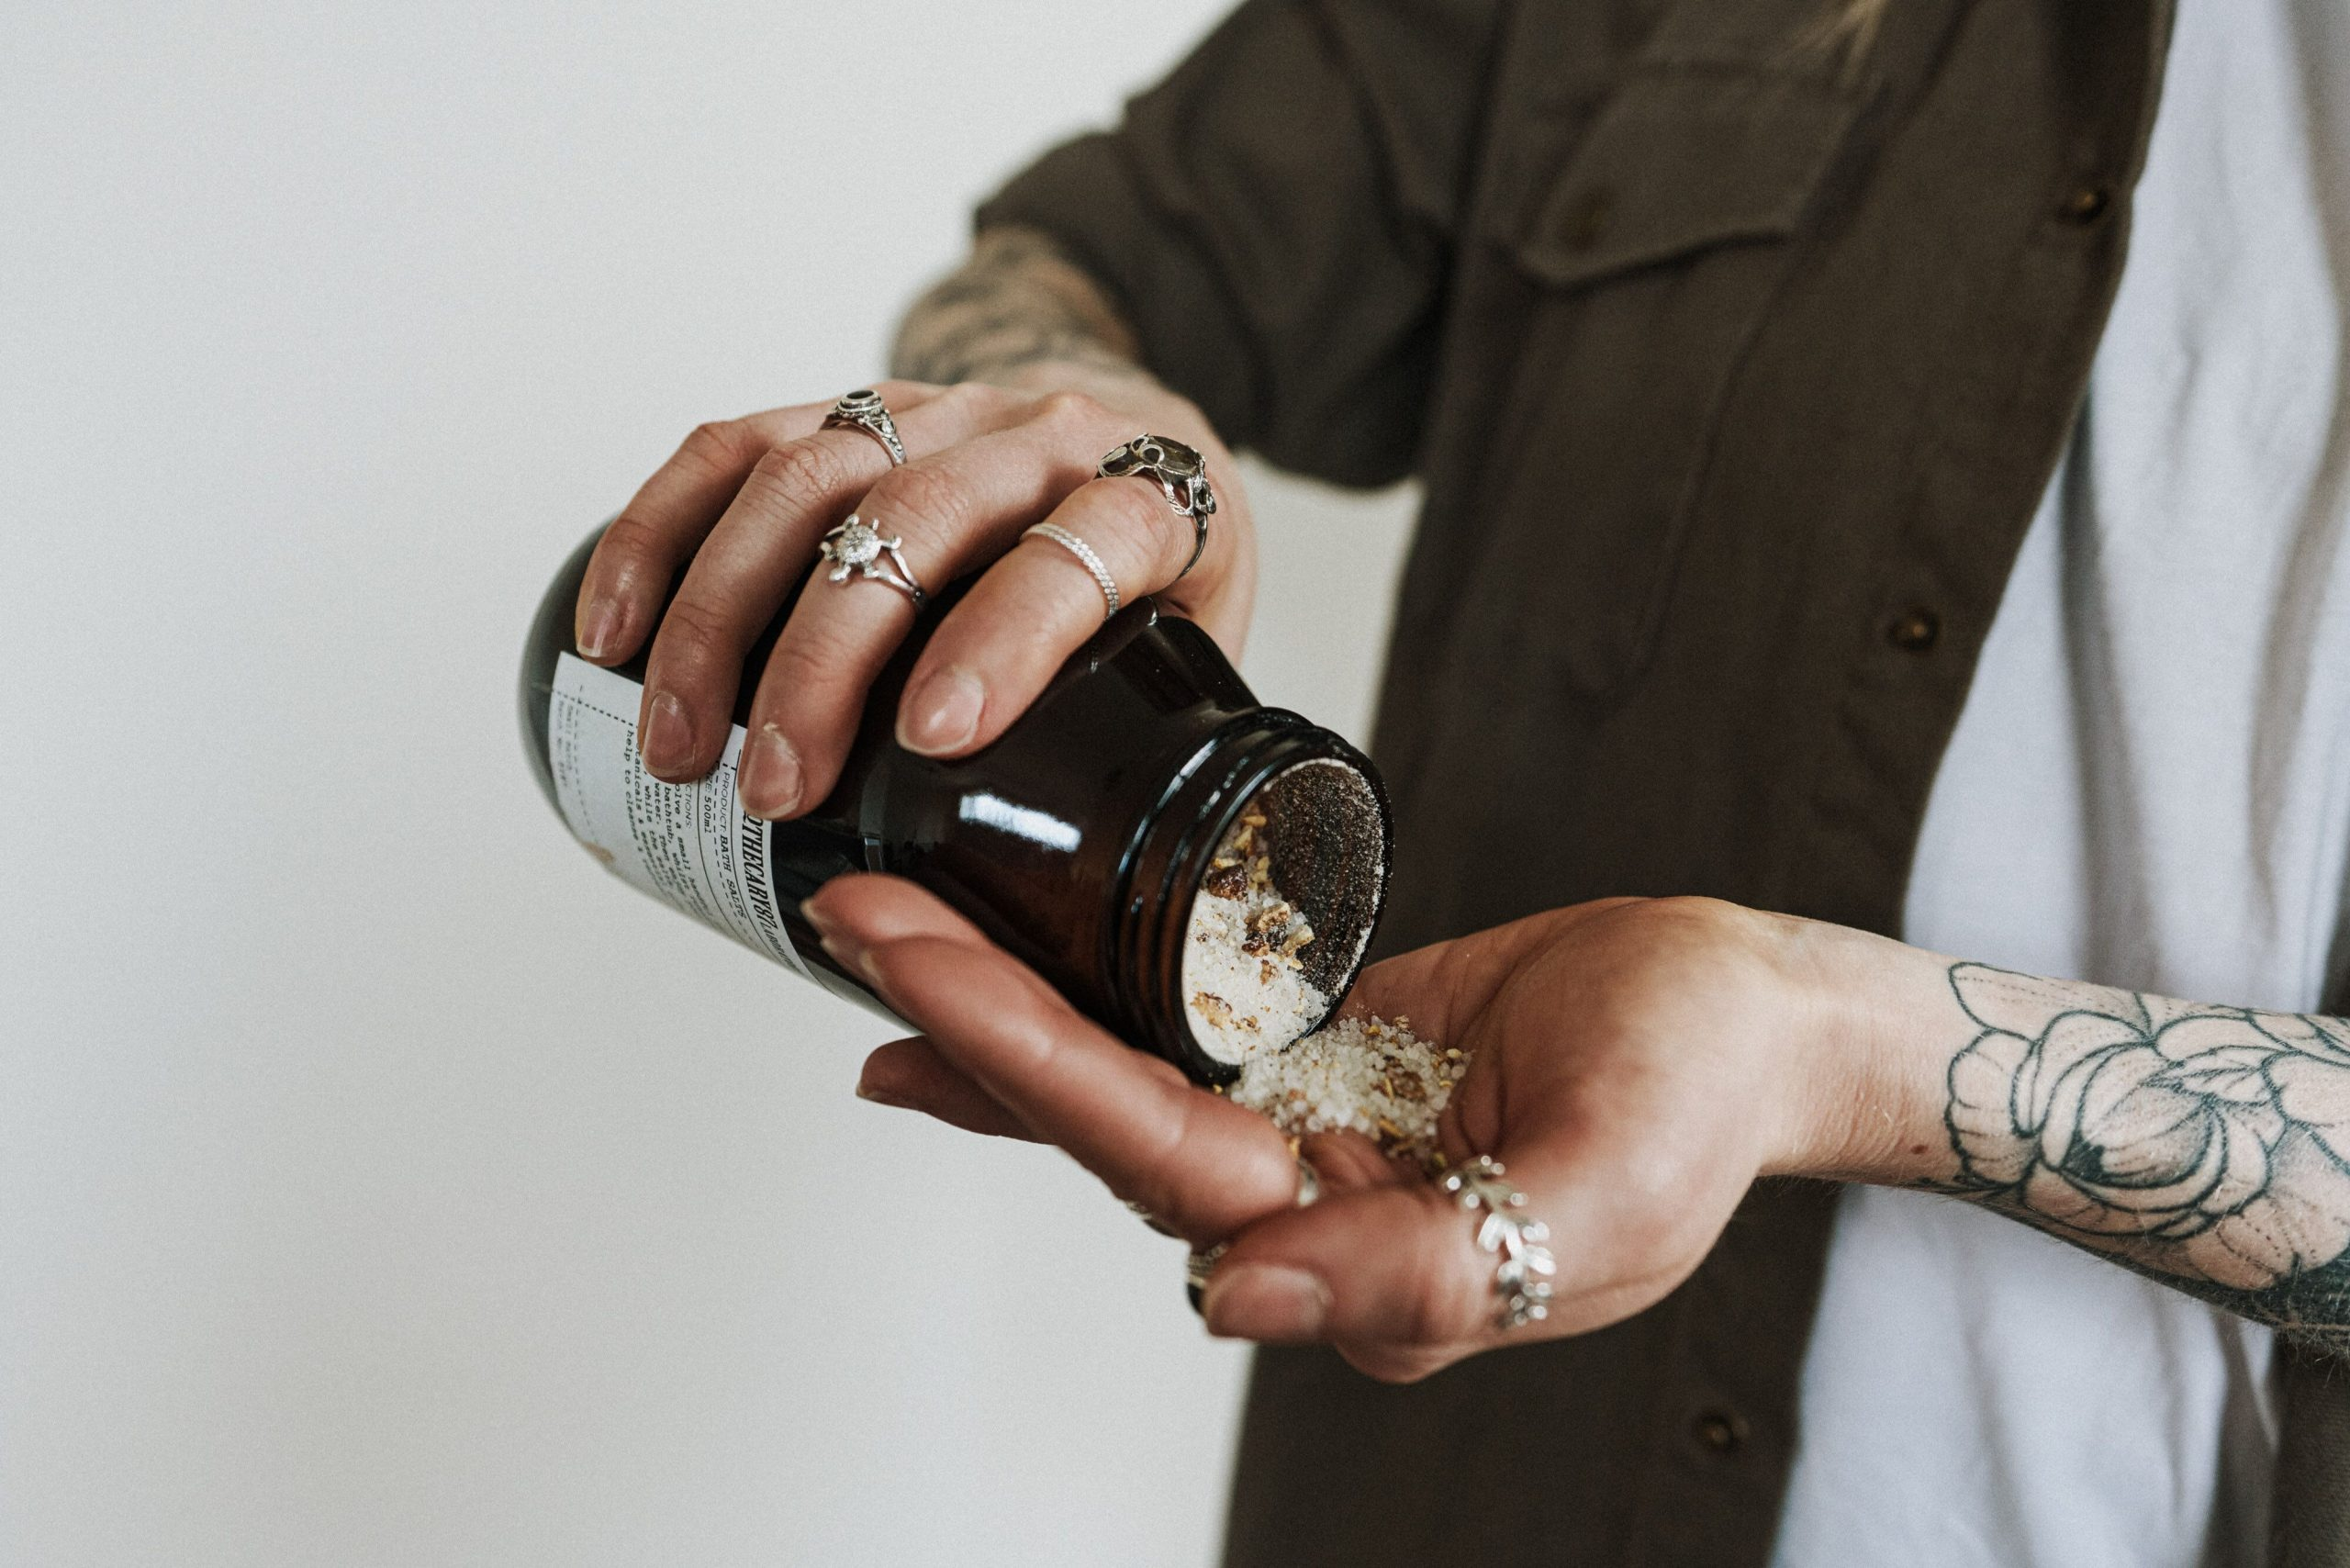 An open bottle of flavored salt being poured by someone onto their left palm set against a white background.